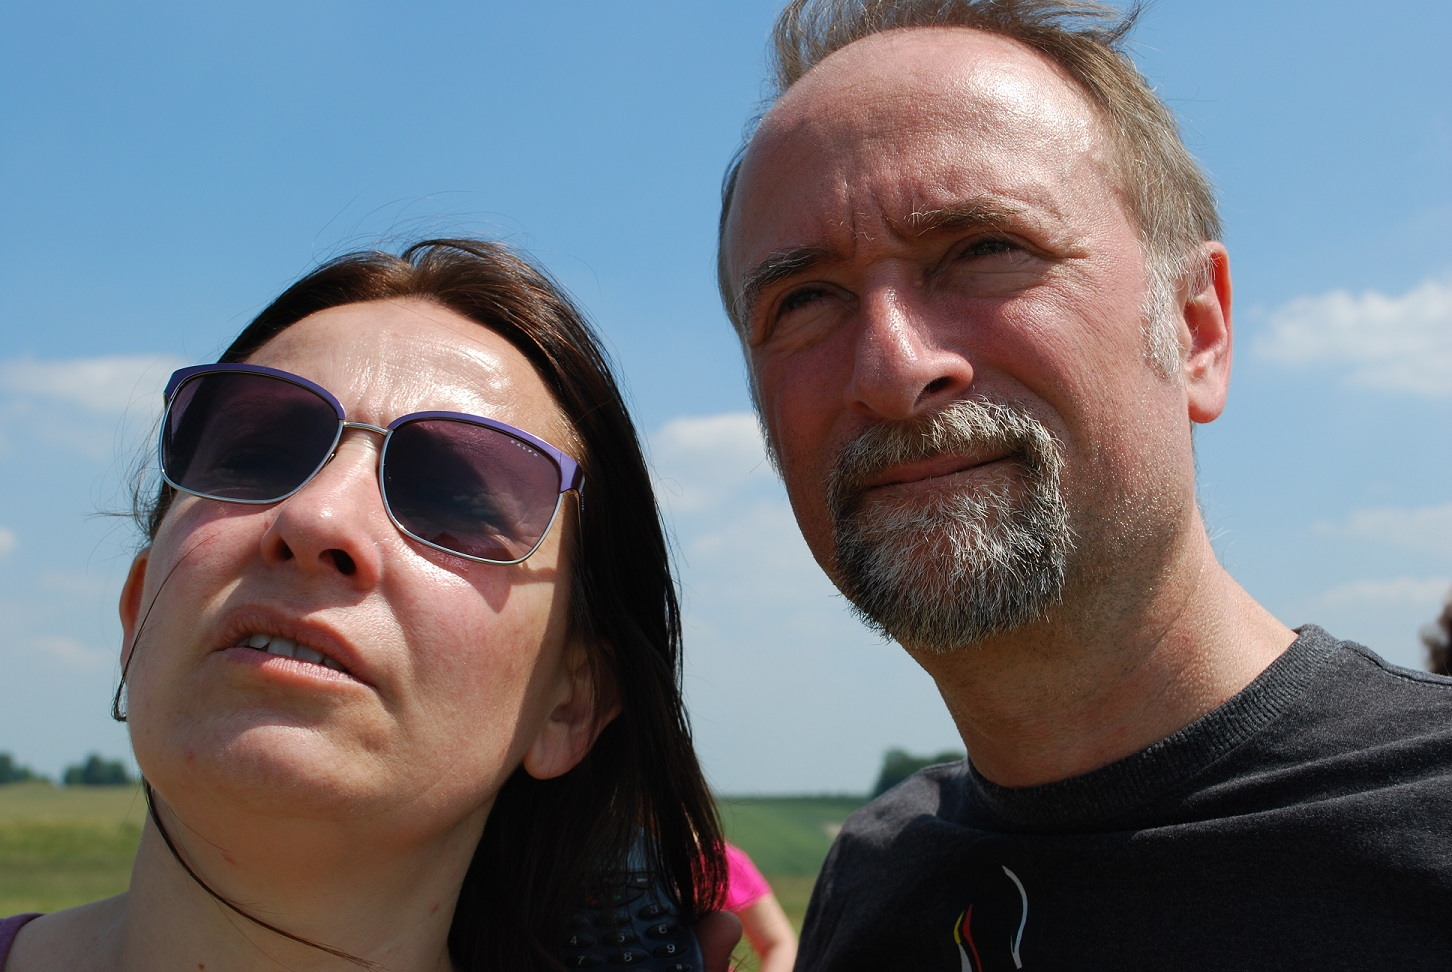 Bego and Martin, September 2013